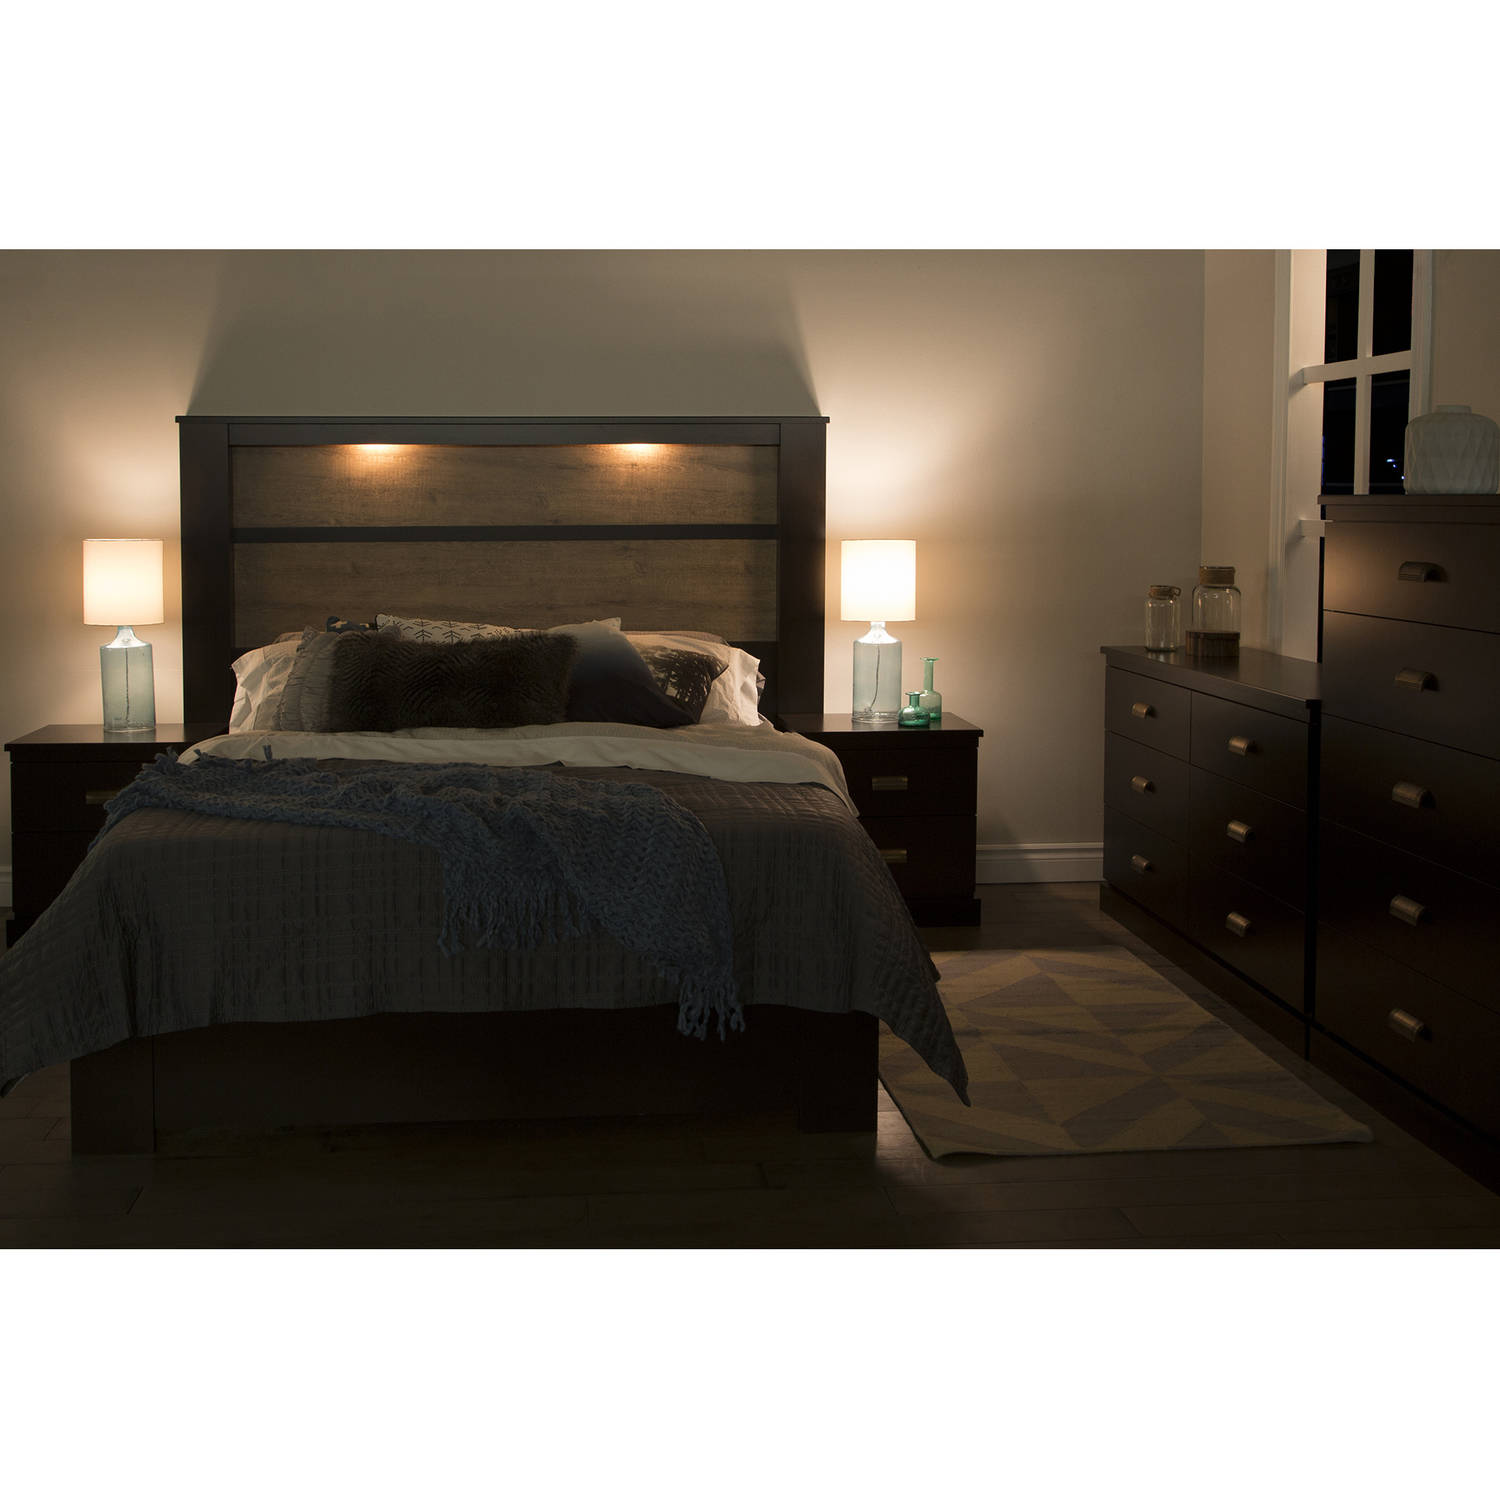 "South Shore Gloria King Headboard with Lights 78"" Multiple"